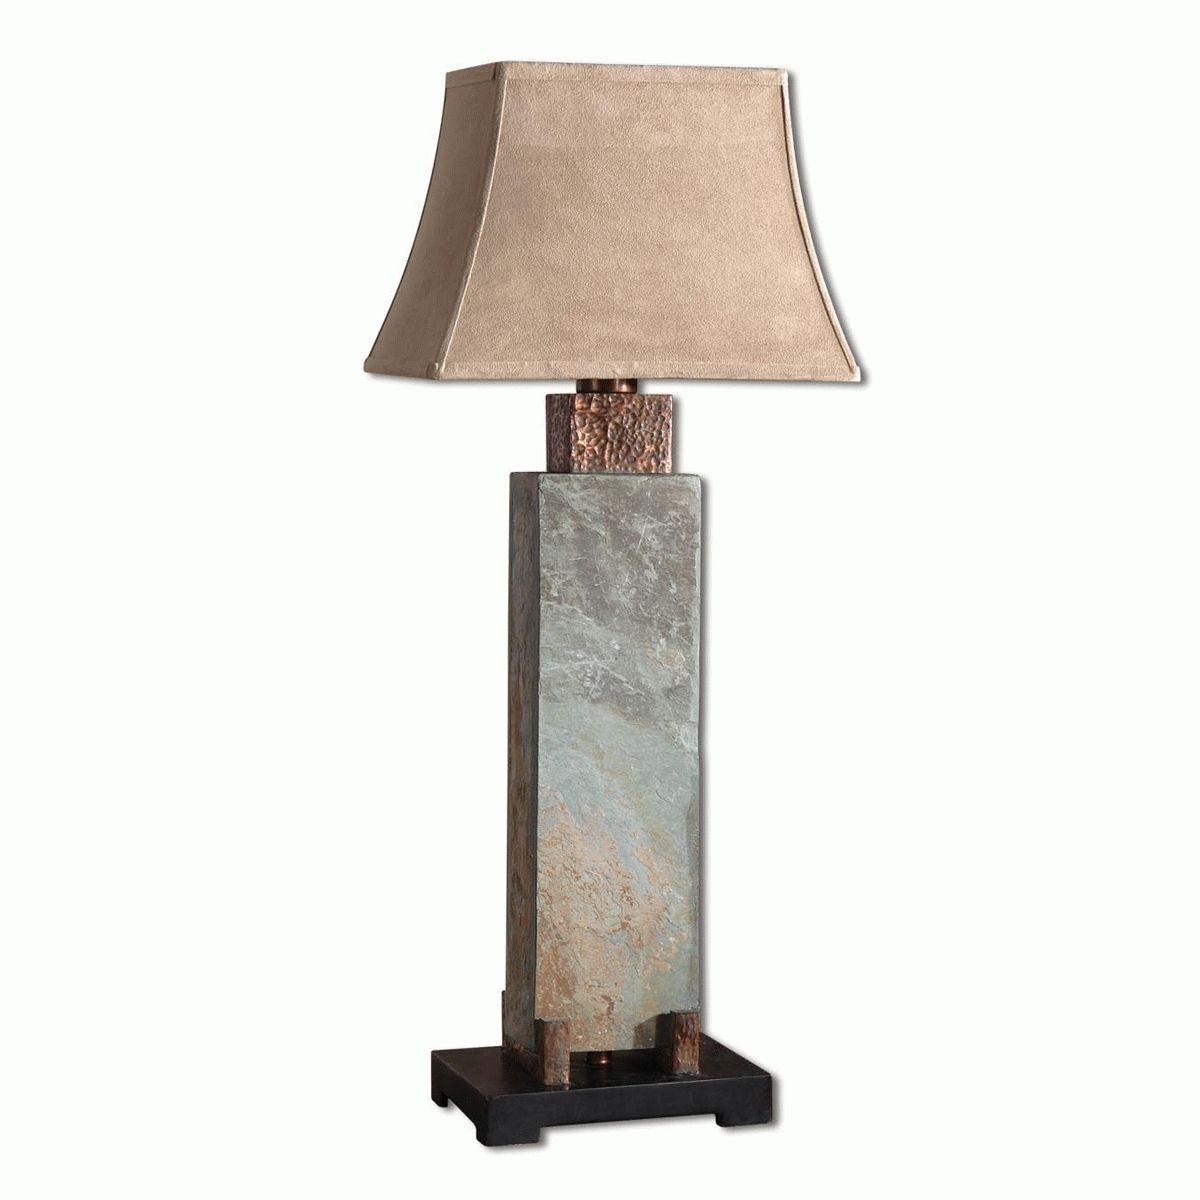 Well Liked The Best Console Gorgeous Rustic Table Western Modern Picture Of Inside Western Table Lamps For Living Room (View 10 of 15)